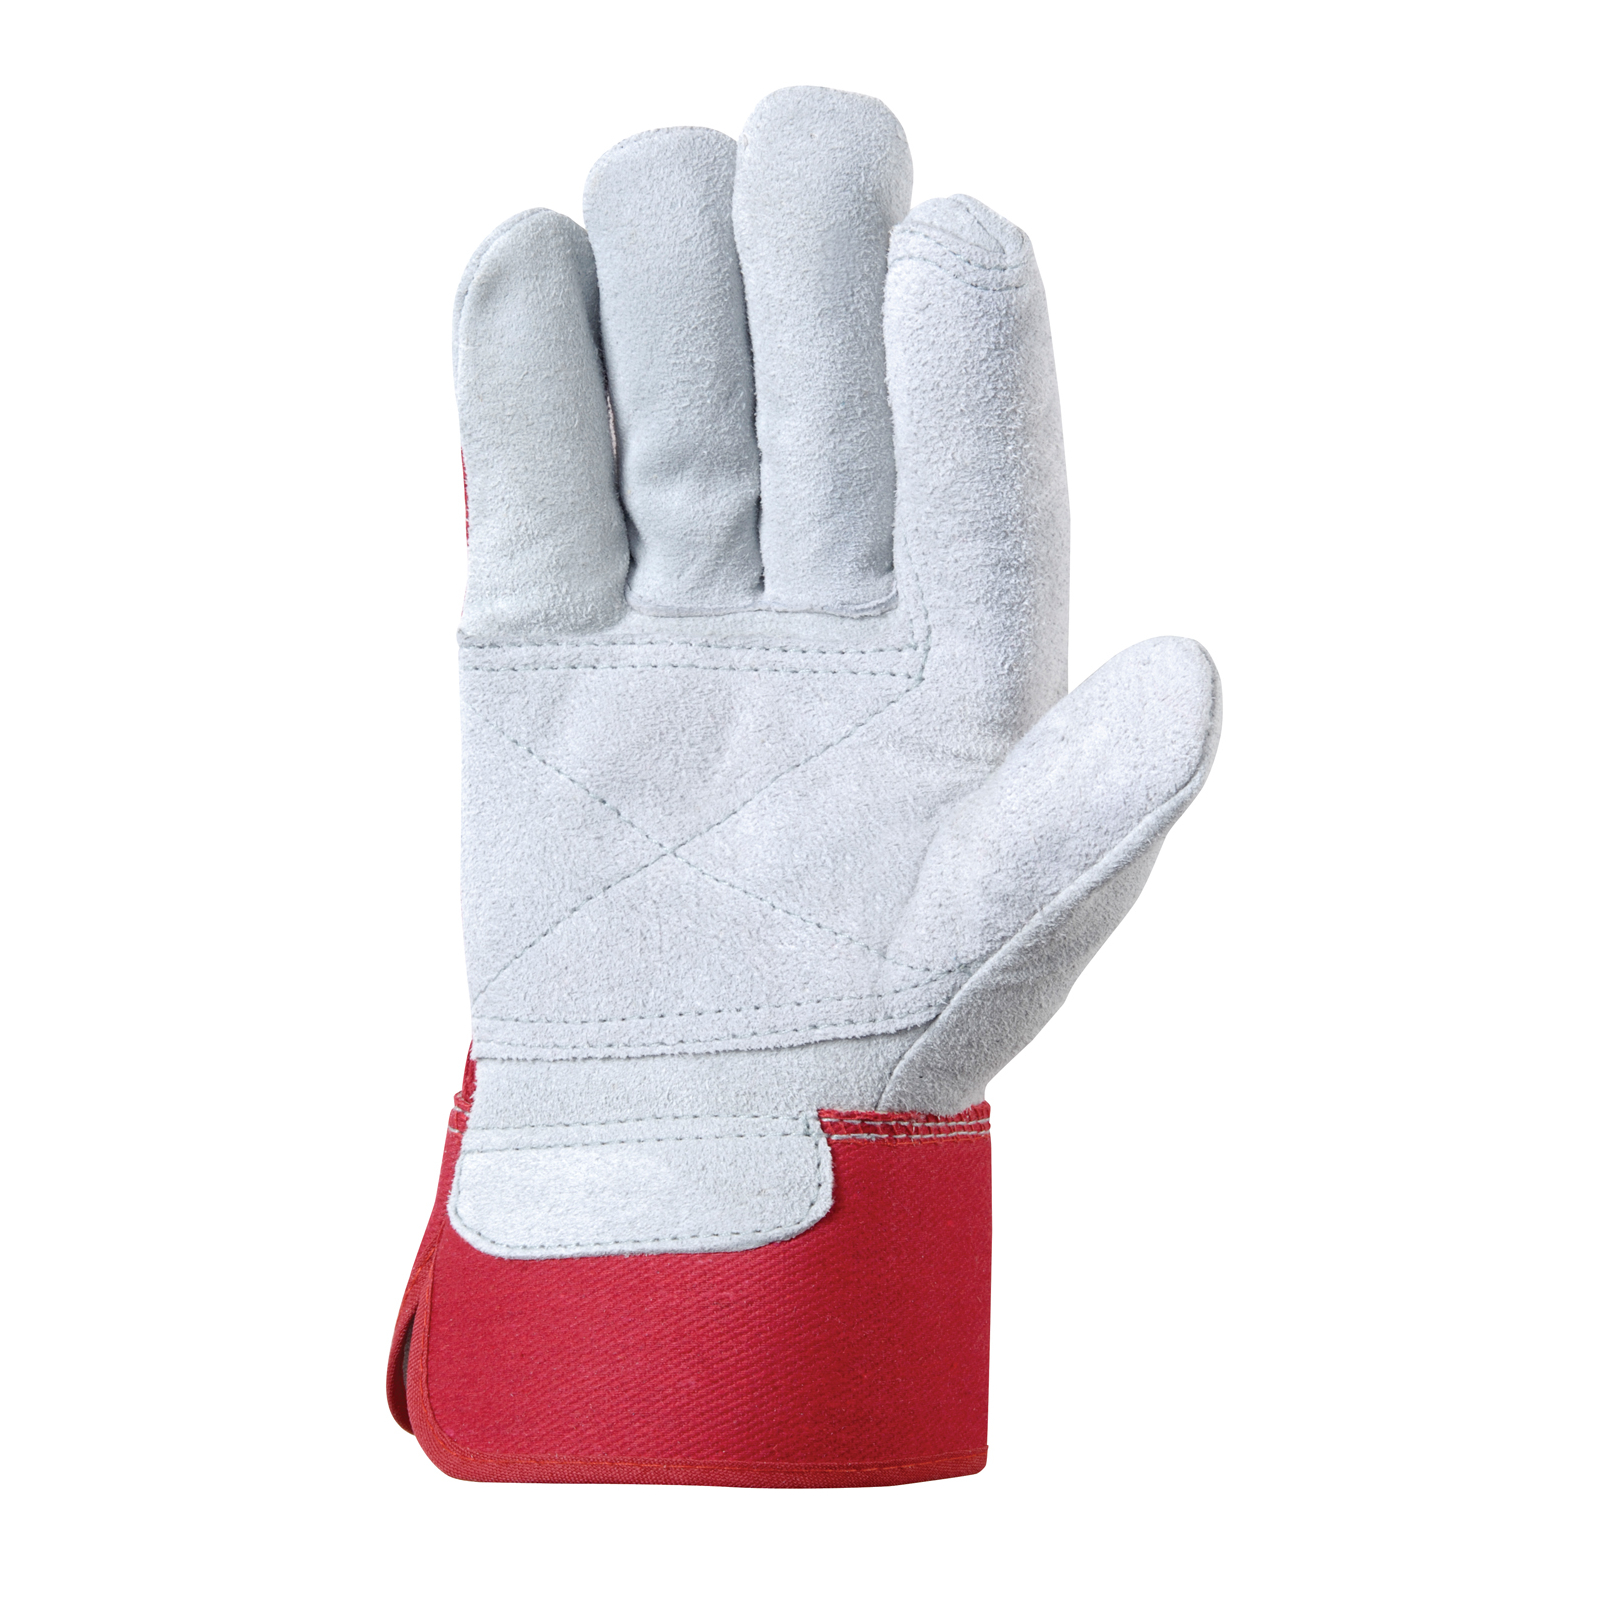 Wells Lamont Double Layer Suede Cowhide Gloves - One Size